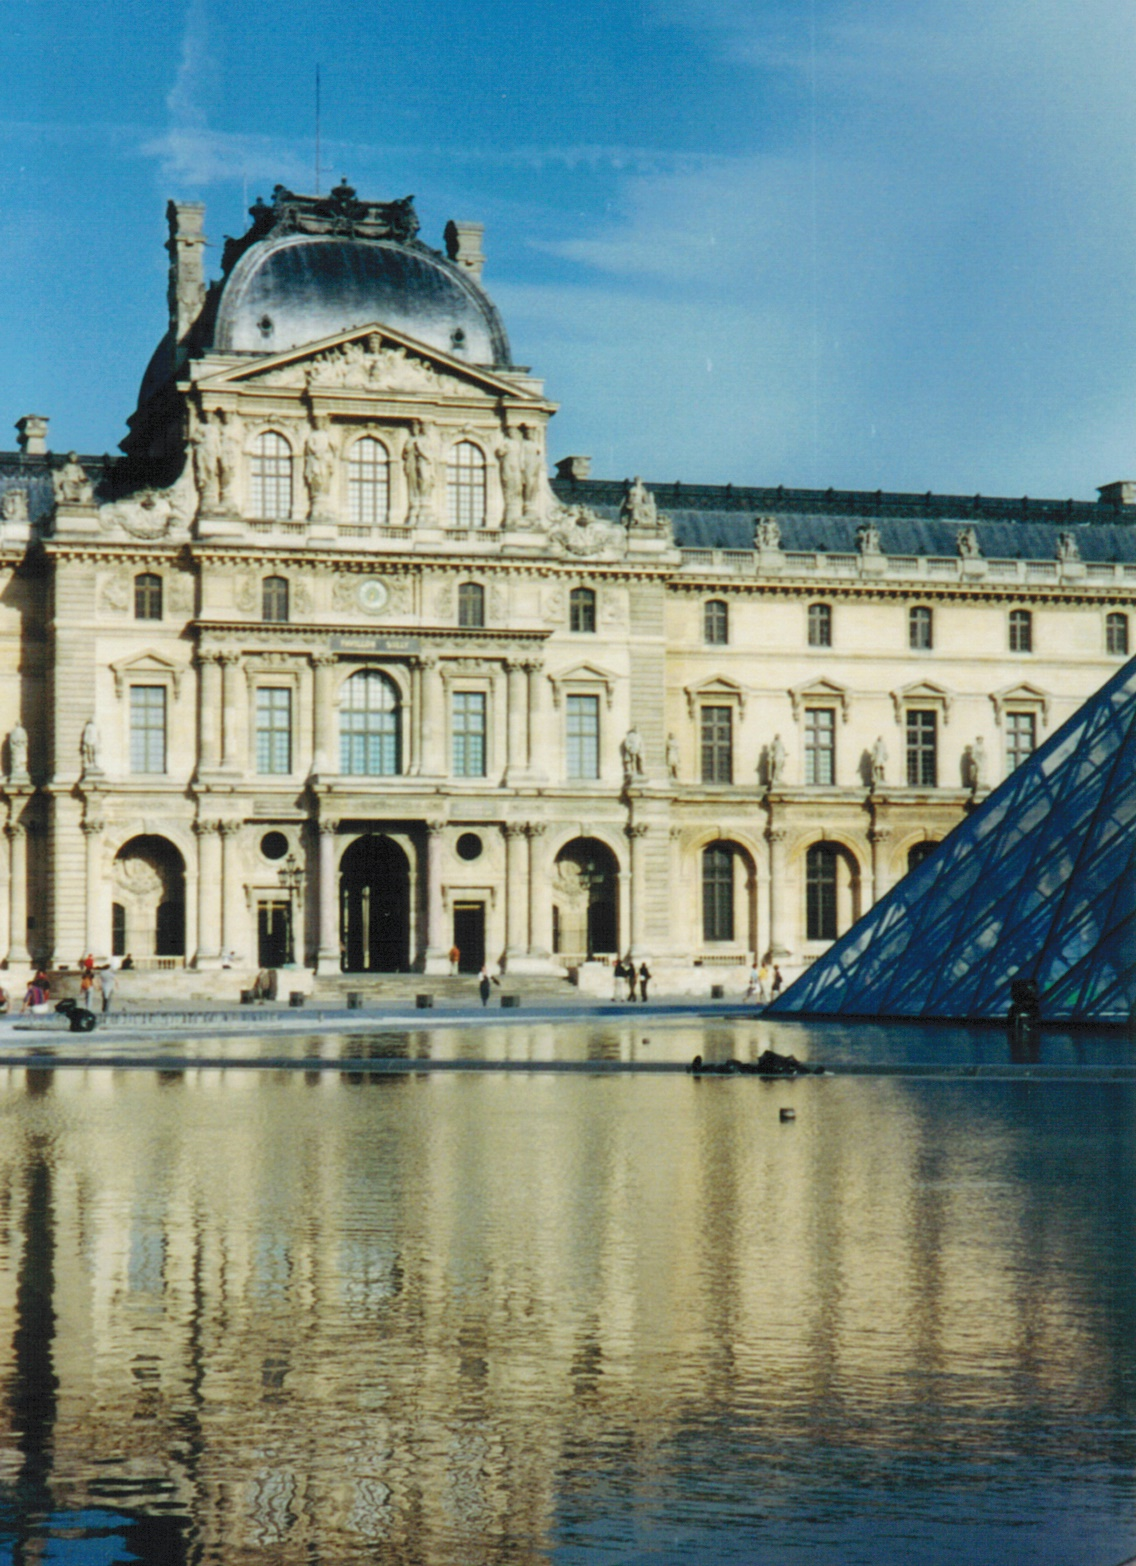 The Louvre 2001